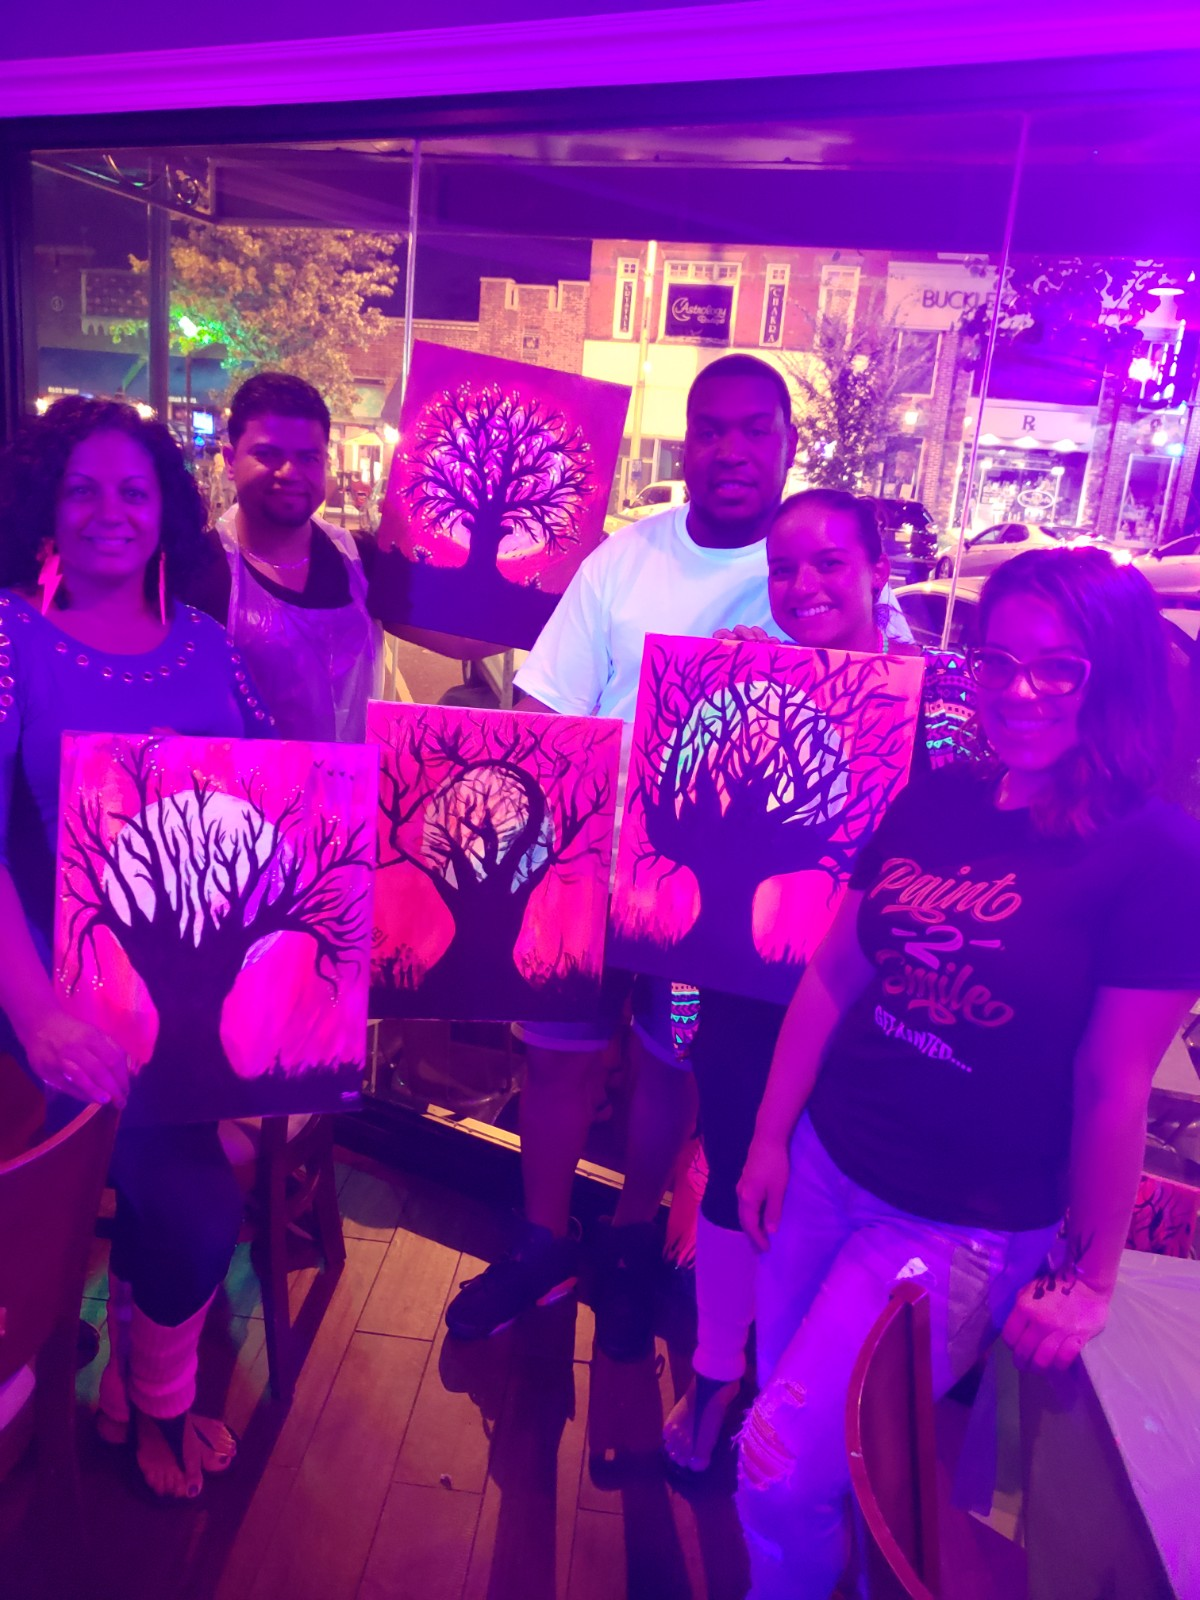 glow in the dark paint night